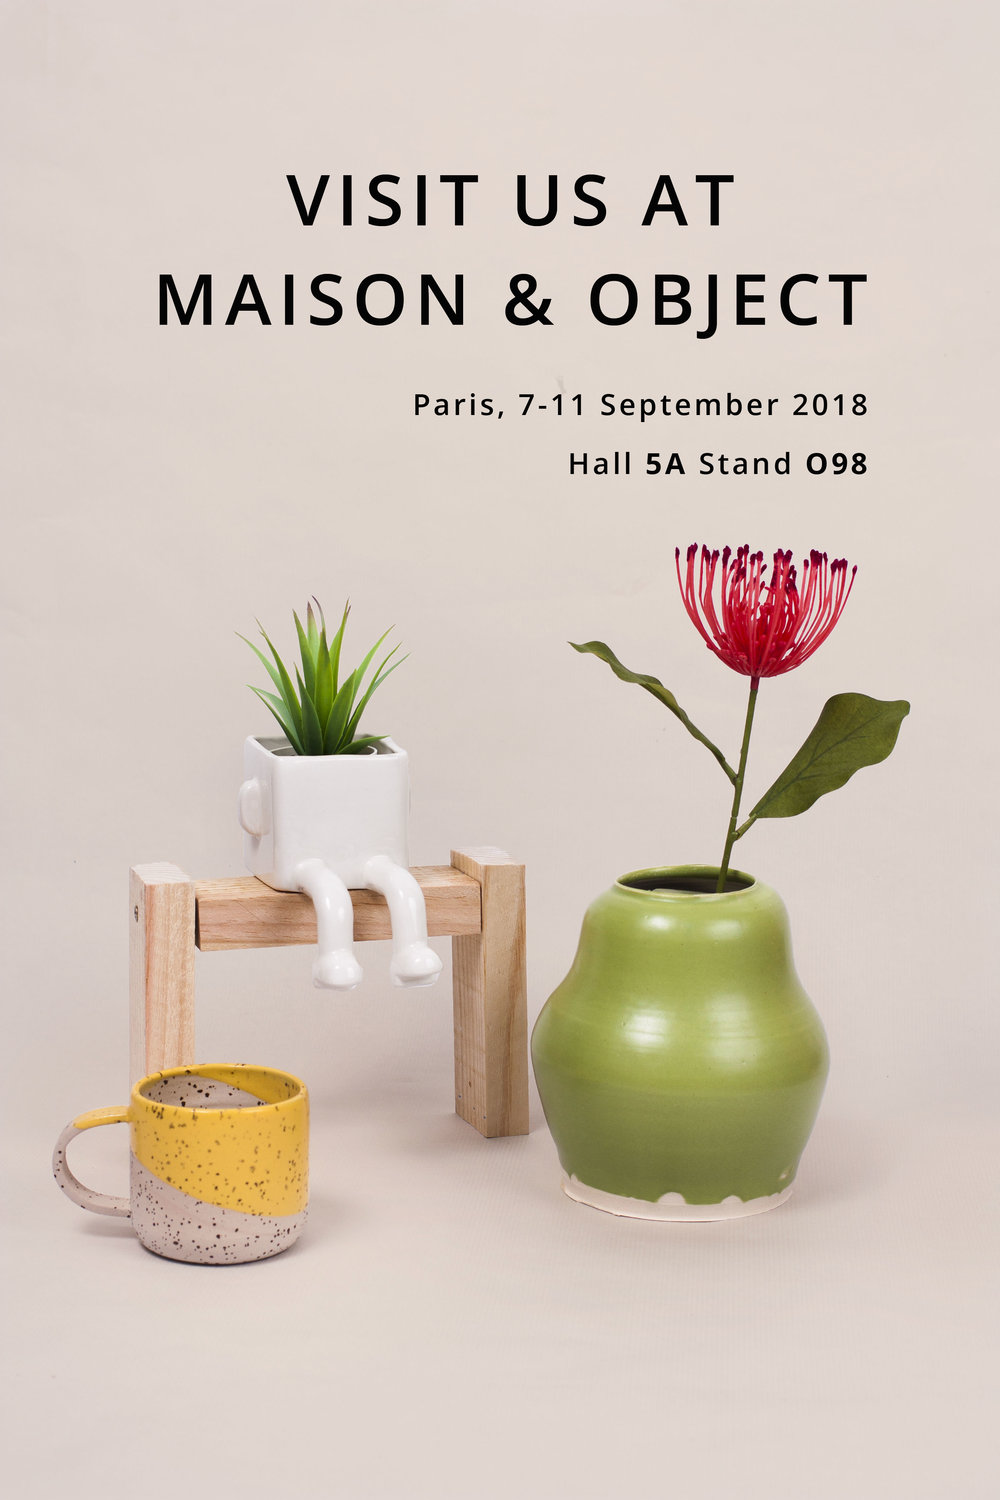 - We and our ceramics will be at Maison & Objet Paris.Visit us!  7 - 11 September 2018Hall 5A Stand O98